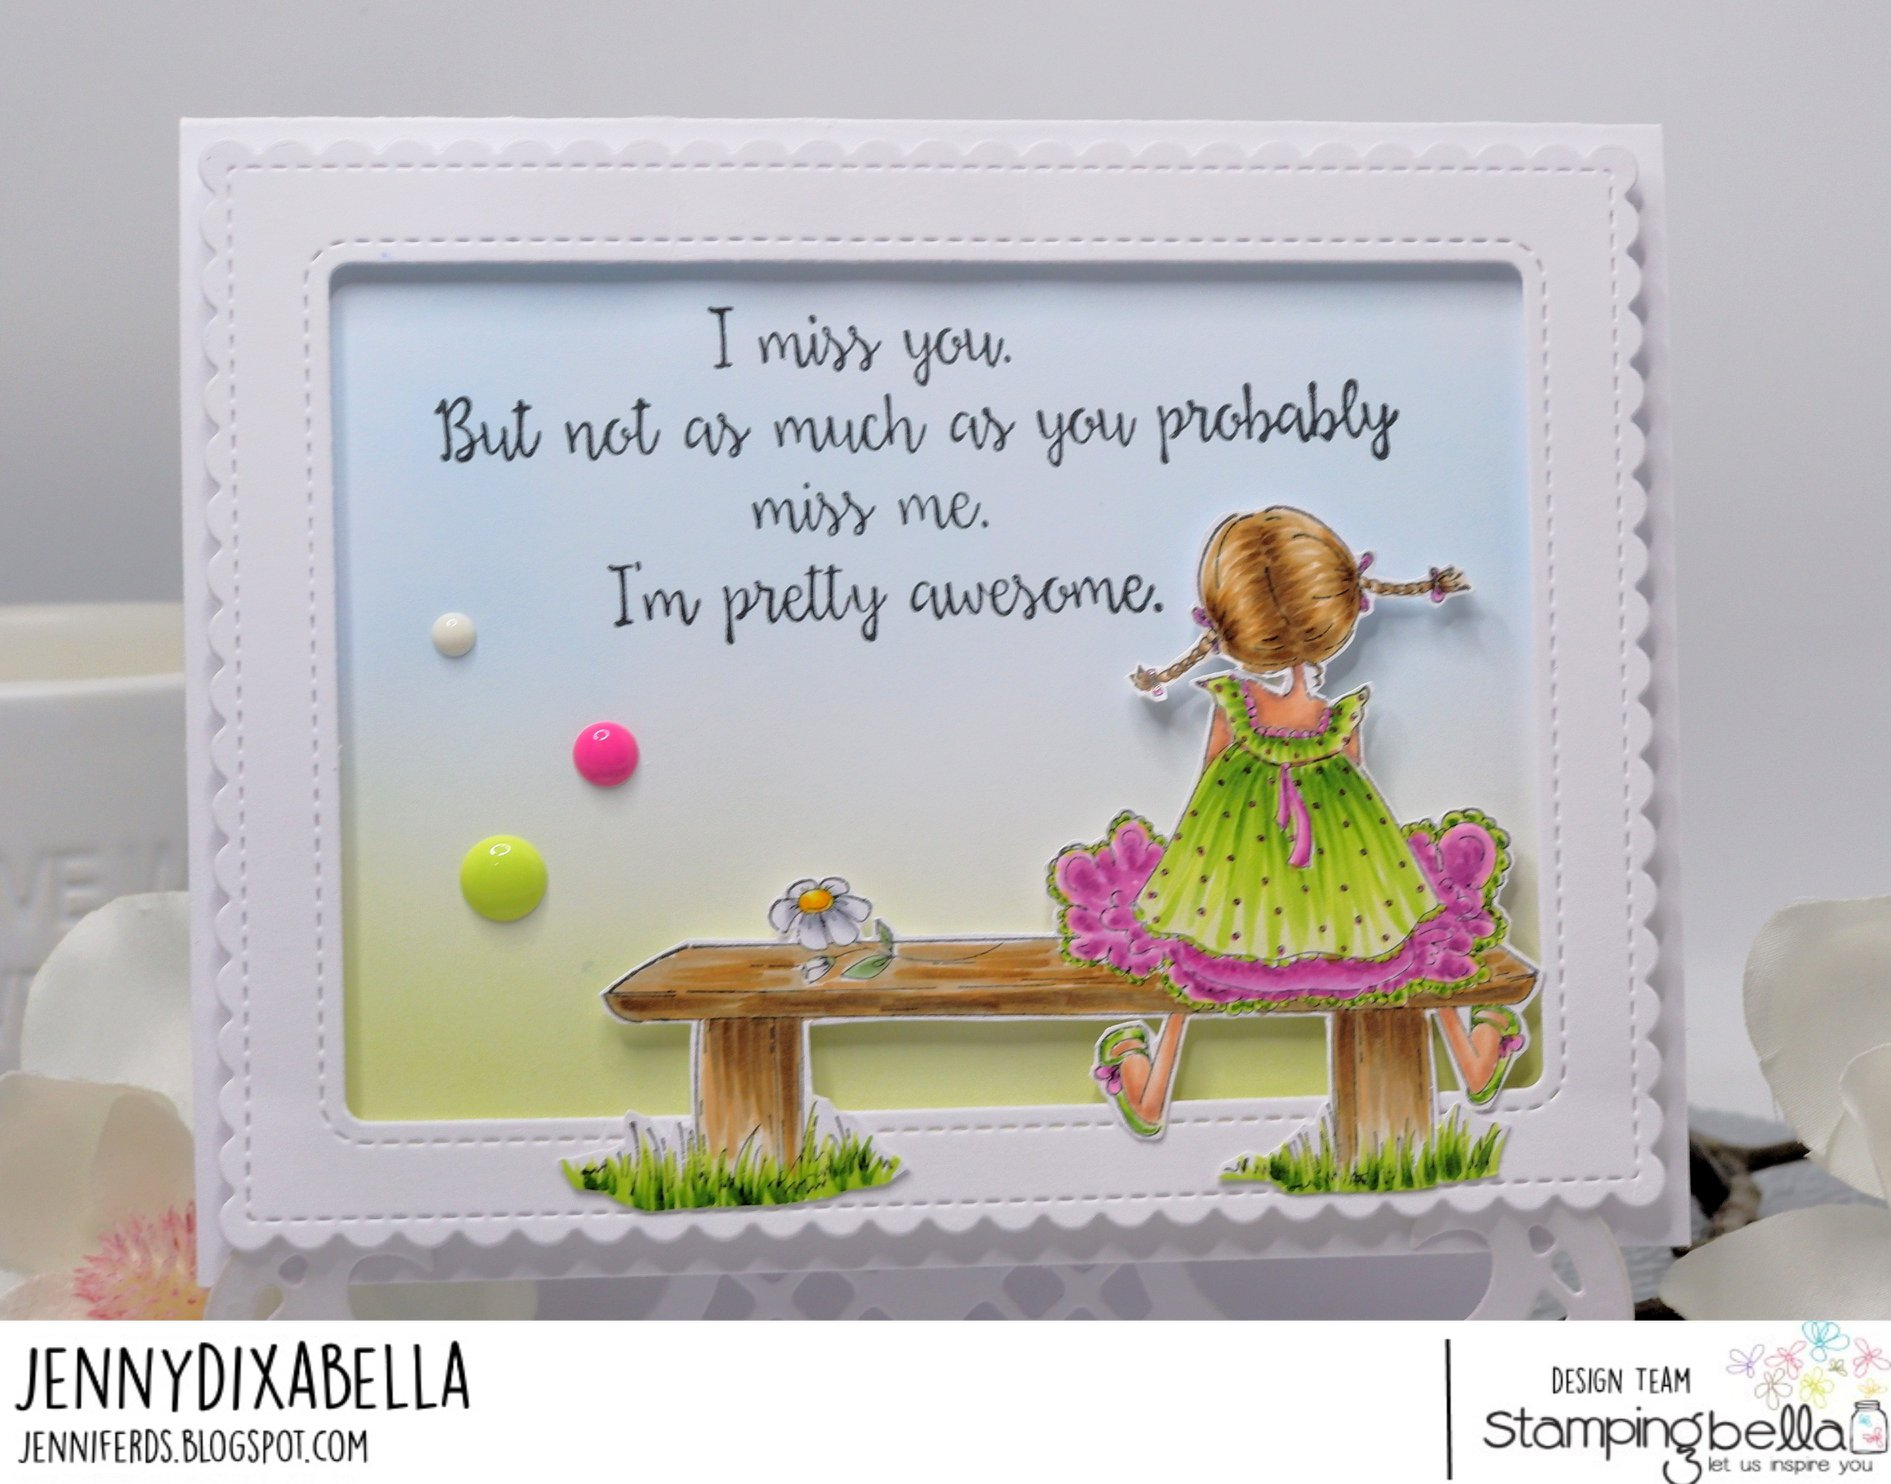 www.stampingbella.com: rubber stamp used: TINY TOWNIE AMANDA IS AWESOME. Card by Jenny Dix